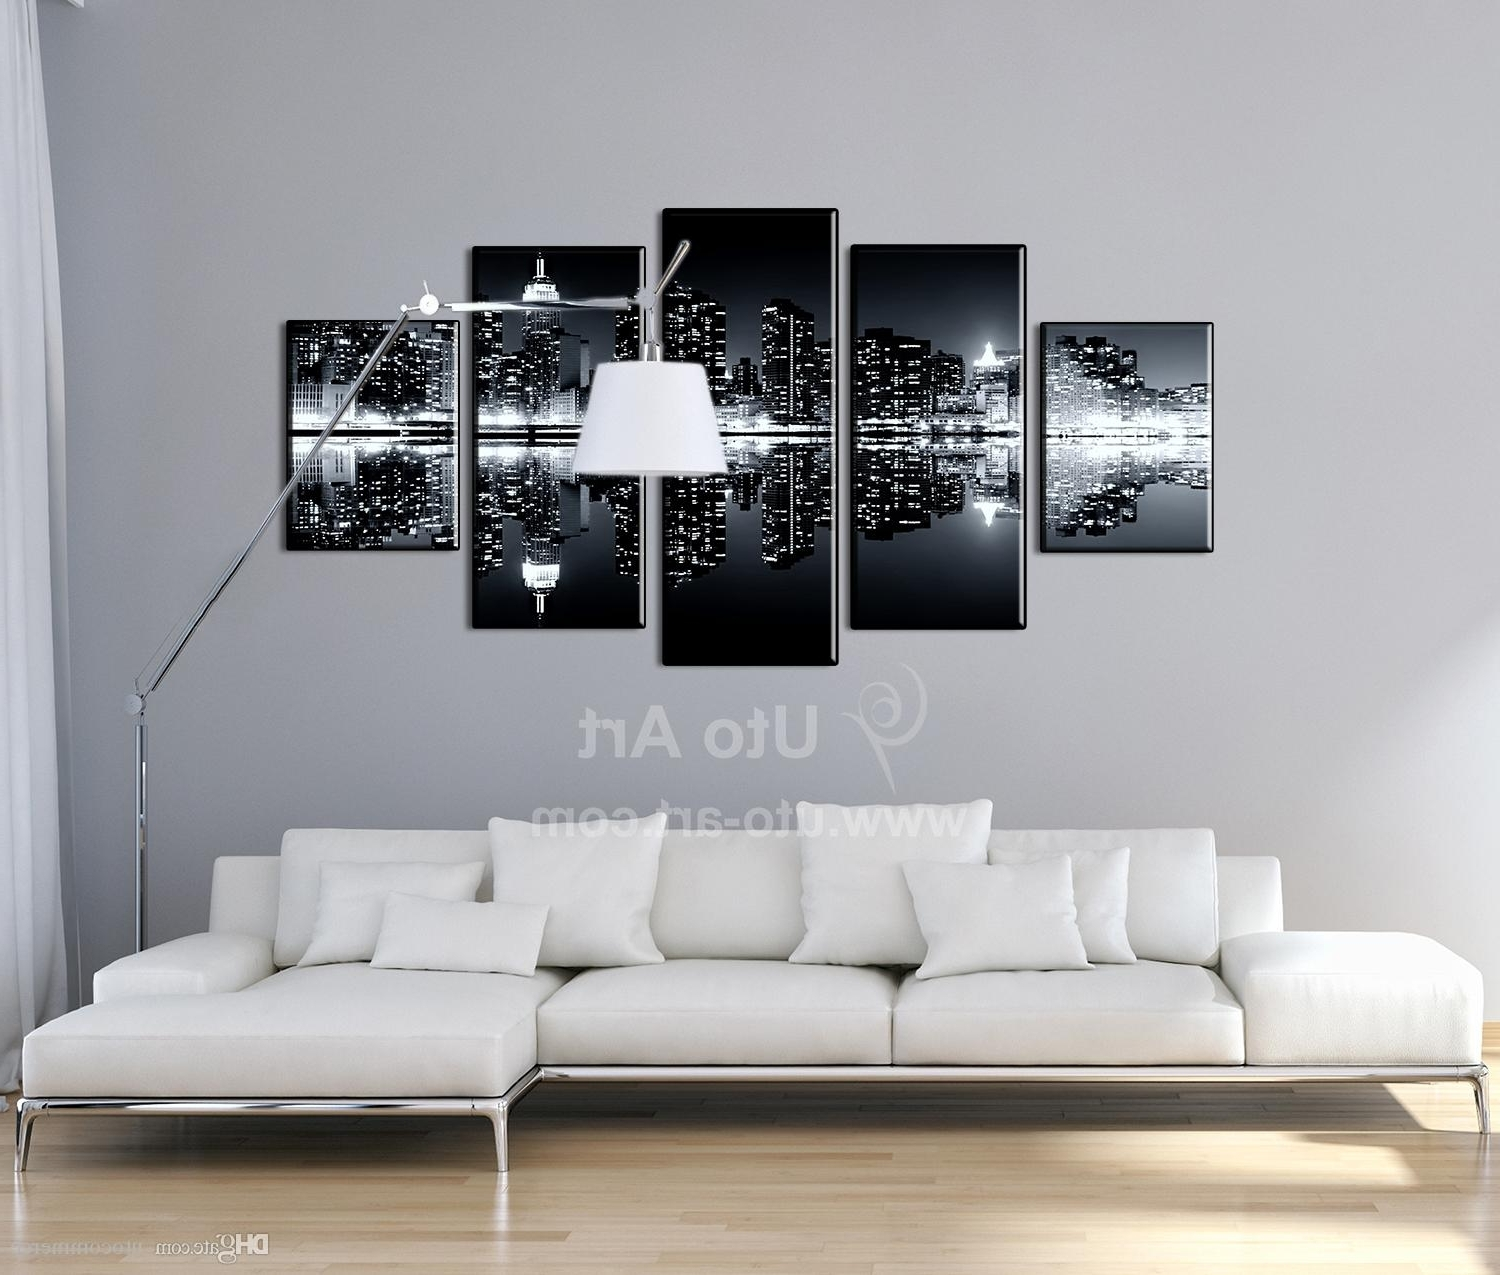 Ku Canvas Wall Art Throughout Most Recently Released 2018 Multi Panel Black Wall Decoration Inverted Image Canvas (Gallery 15 of 15)